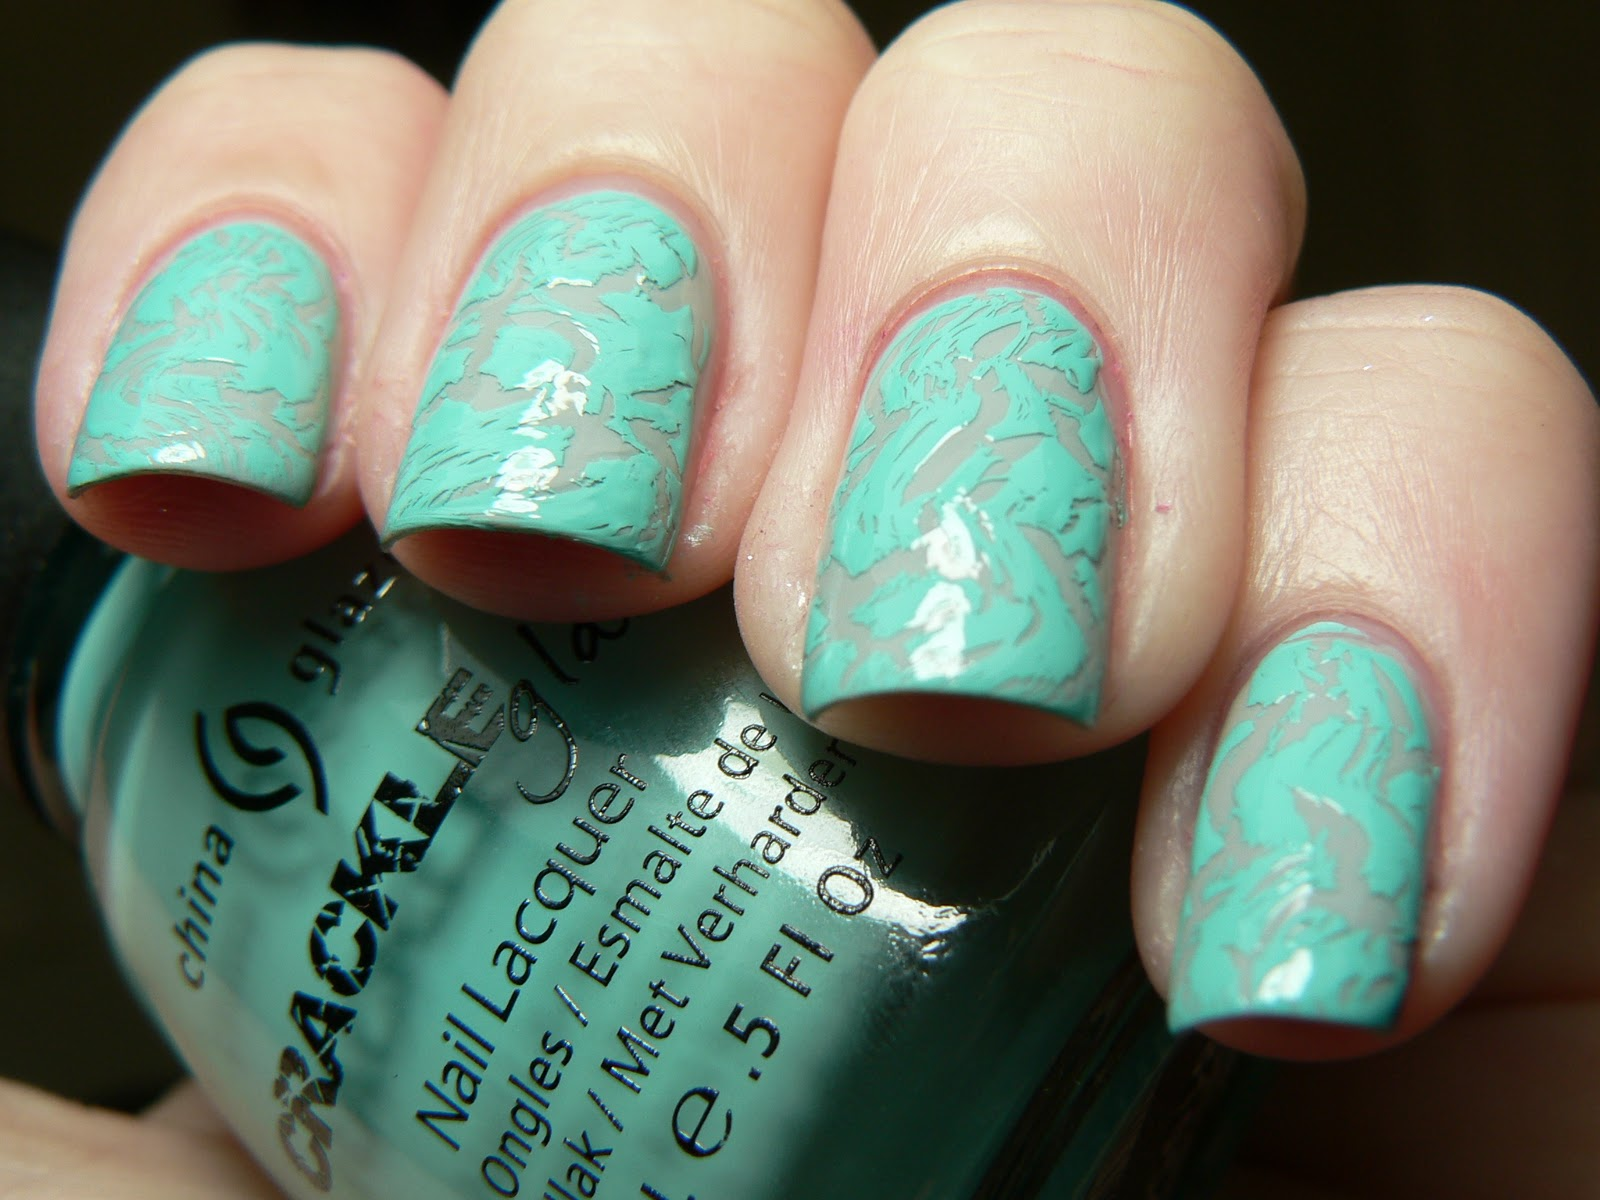 the very pretty Crushed Candy from China Glaze's Crackle Collection